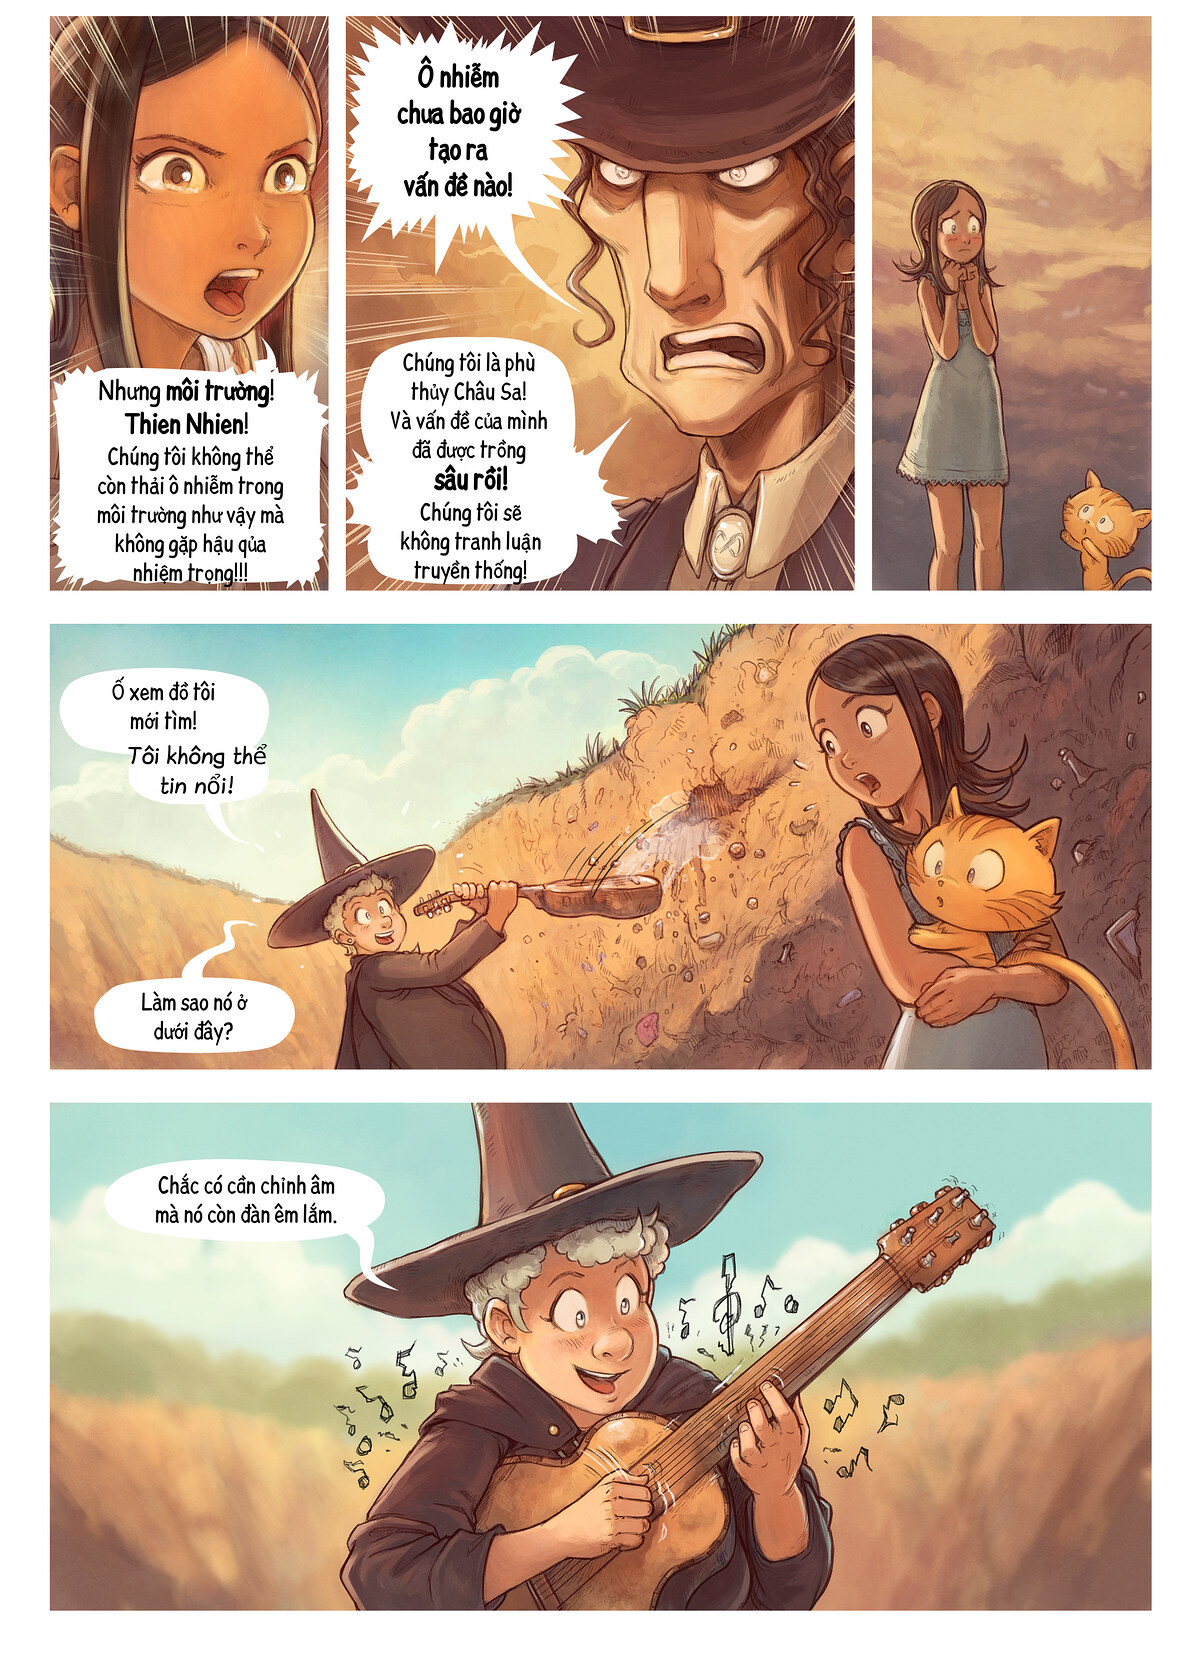 A webcomic page of Pepper&Carrot, Tập 19 [vi], trang 6